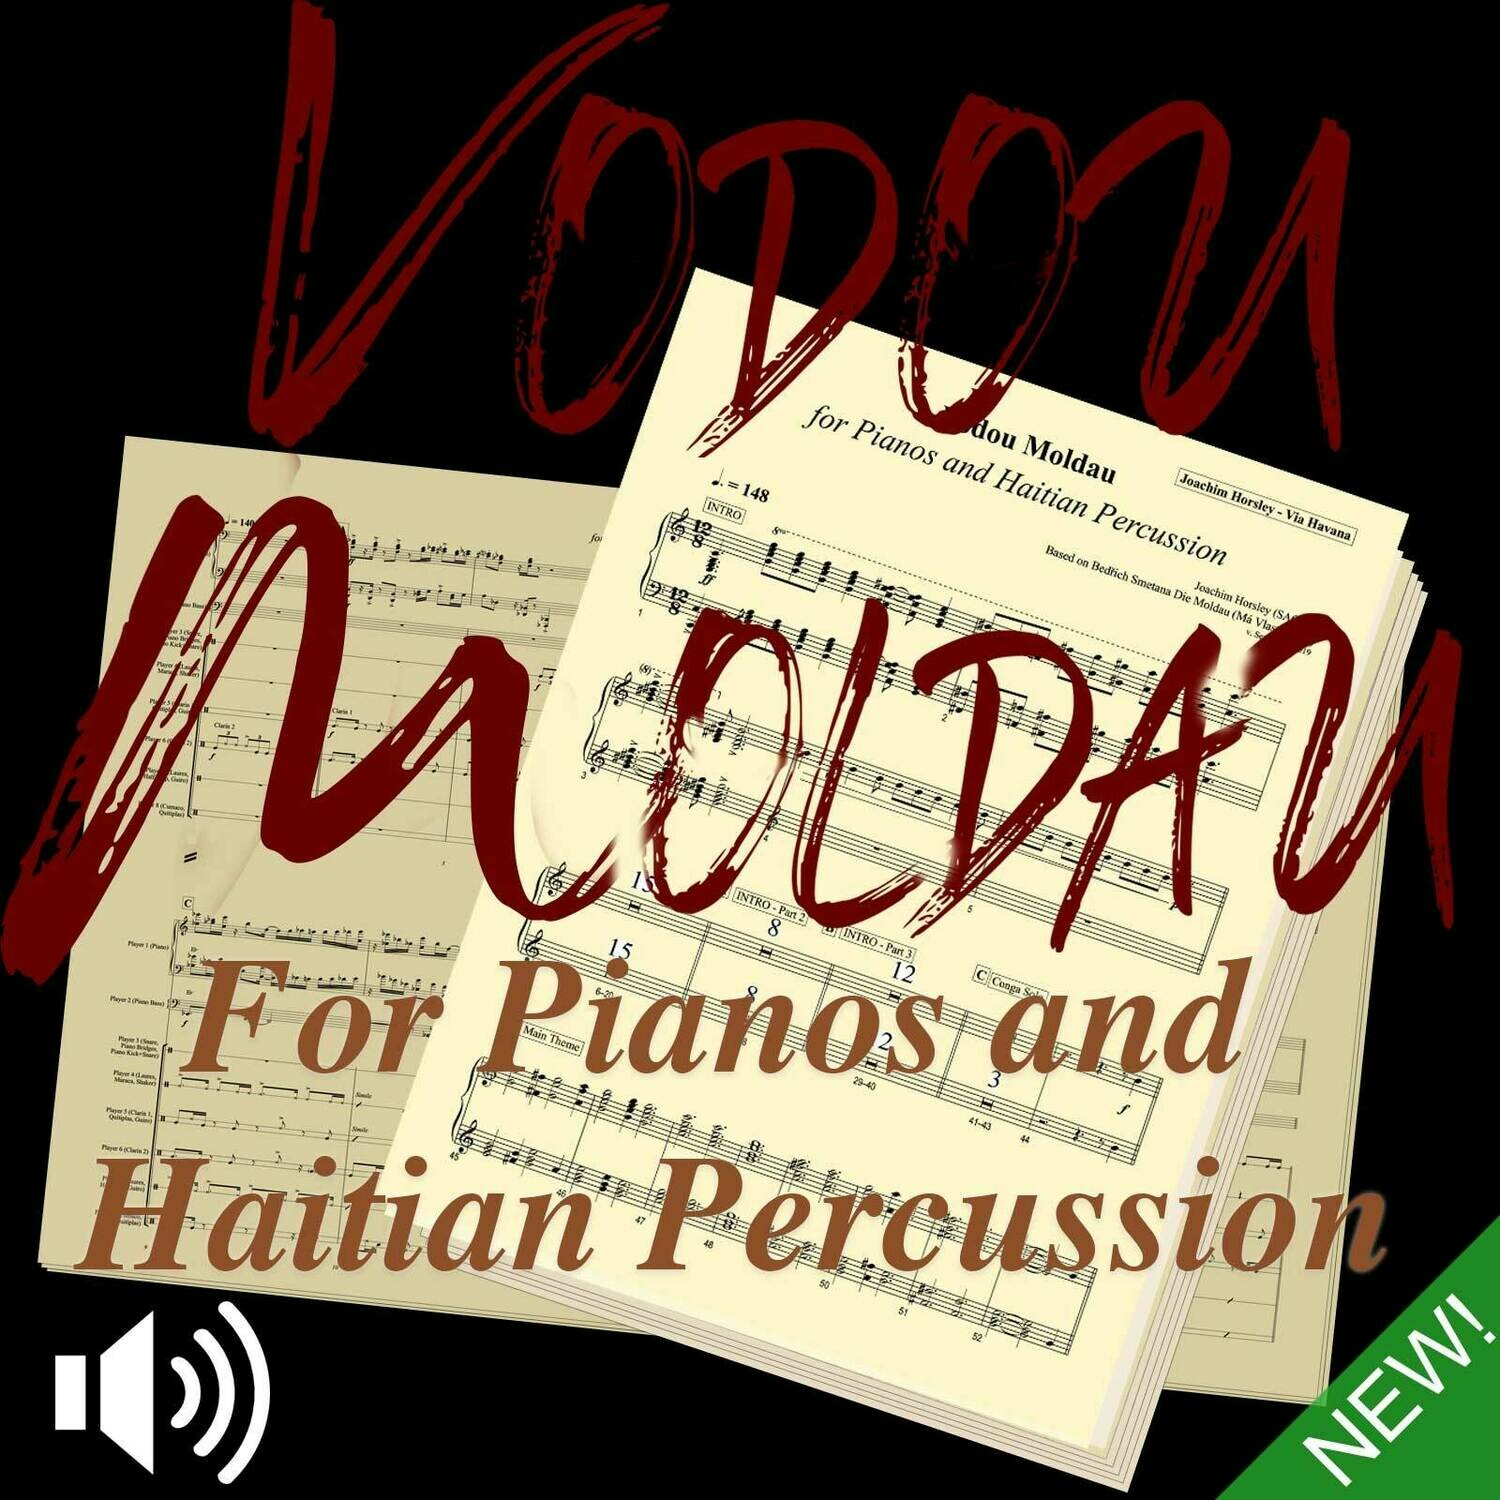 Vodou Moldau (Score, Parts, and Play-Along Mp3s)